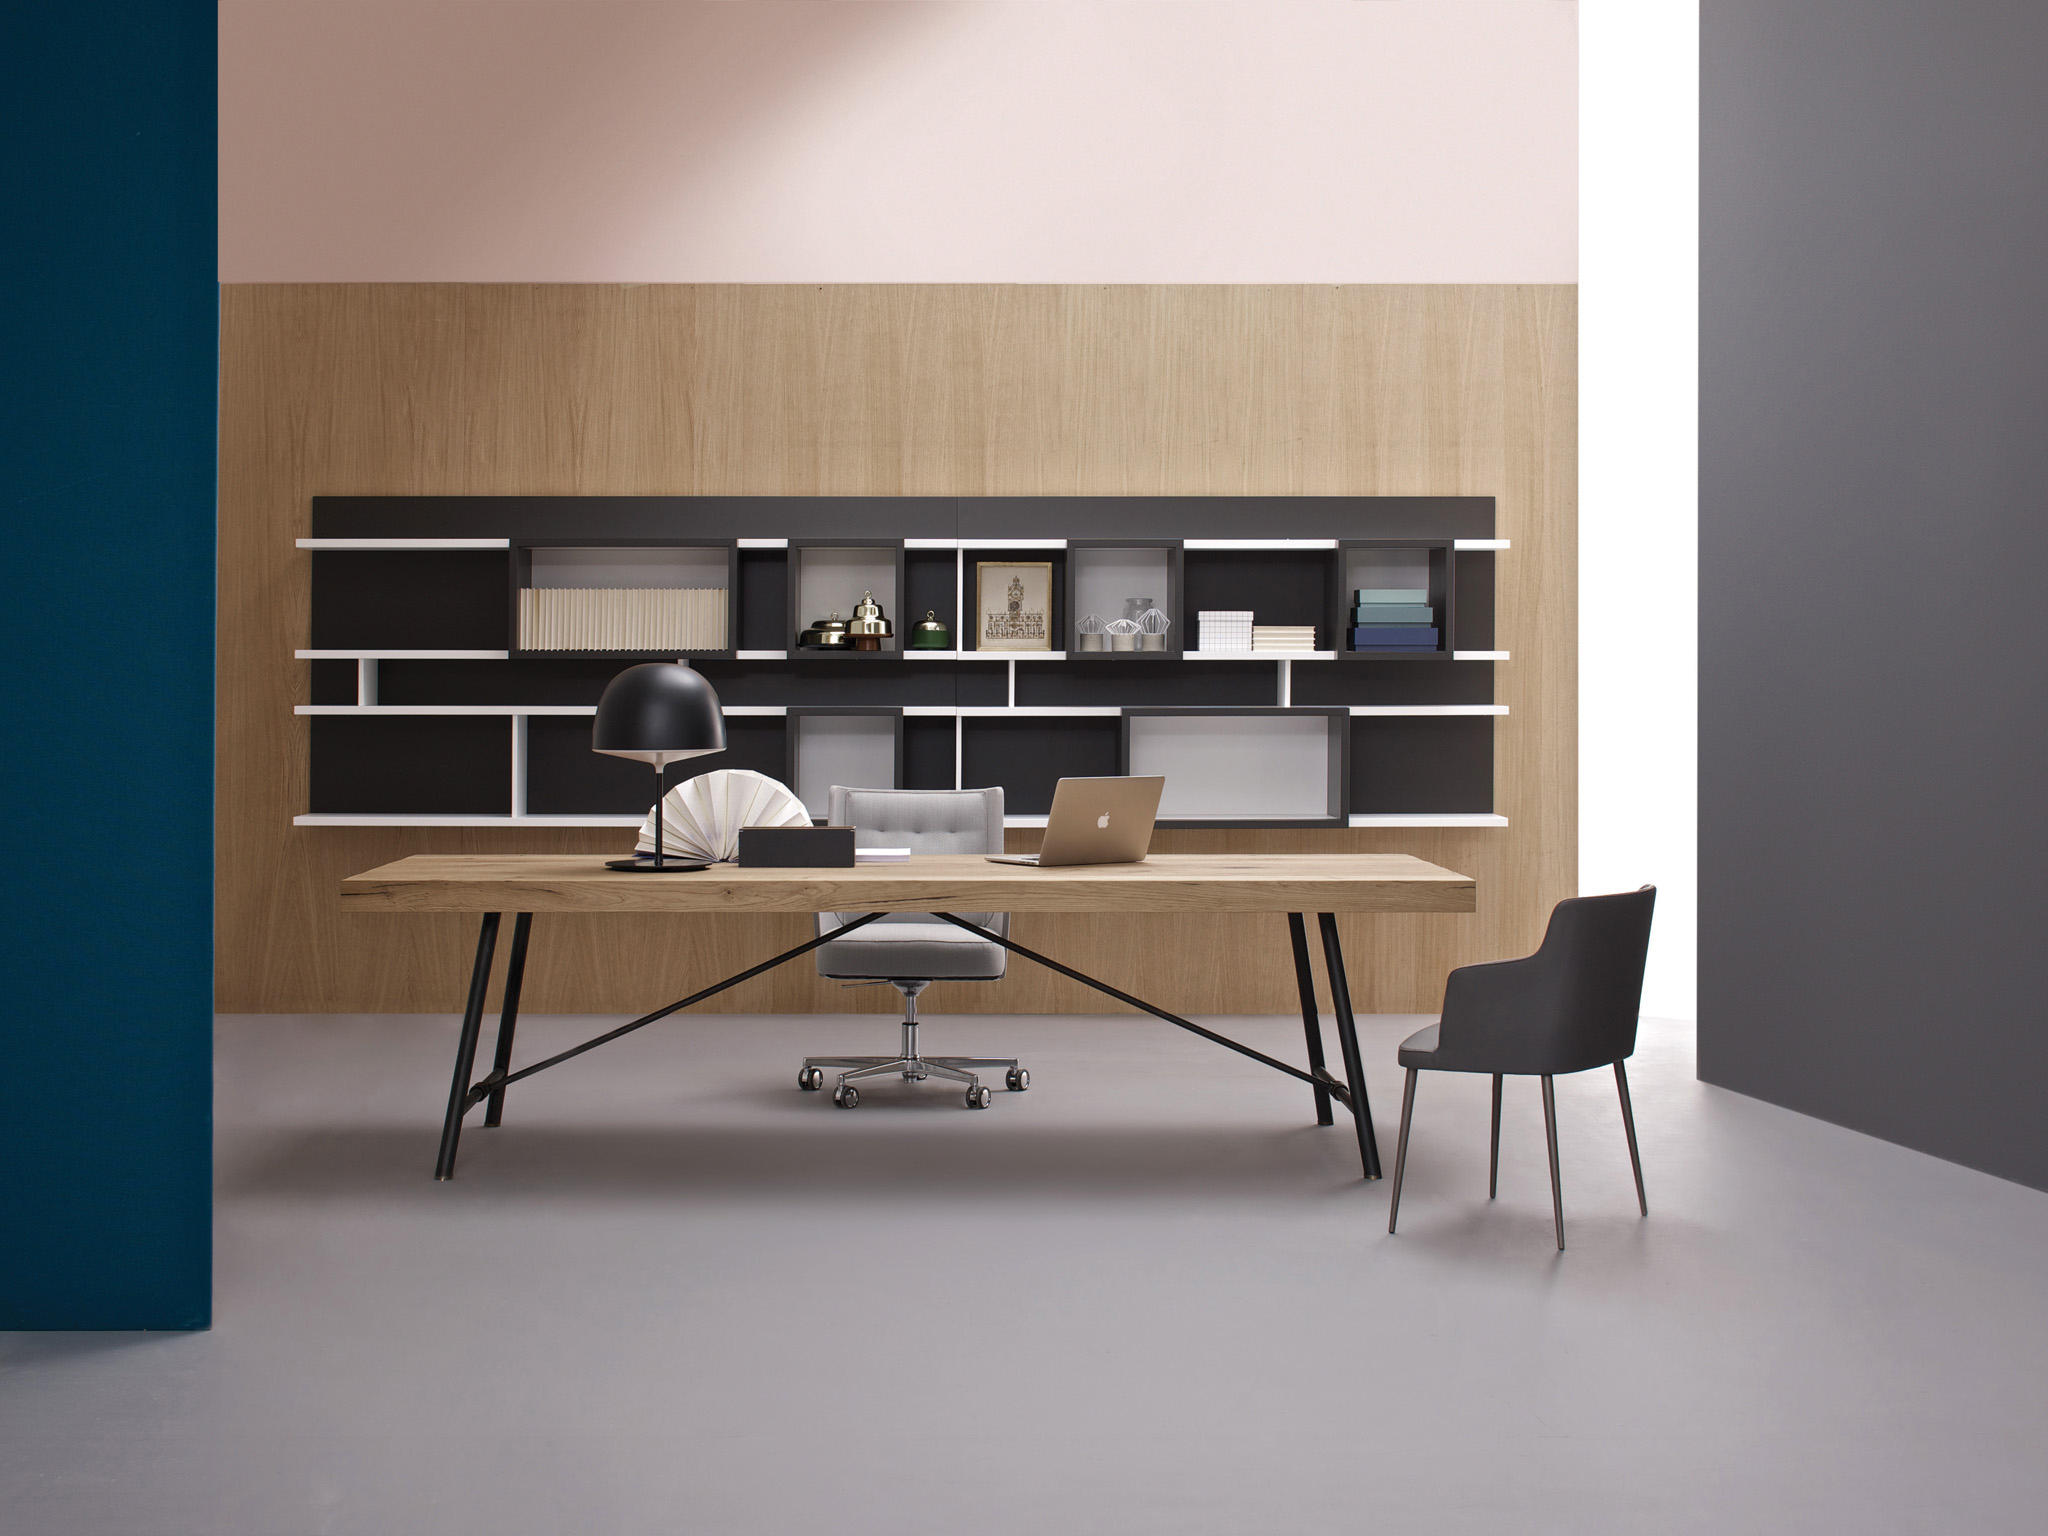 Plombier Table Dining Tables From Estel Group Architonic